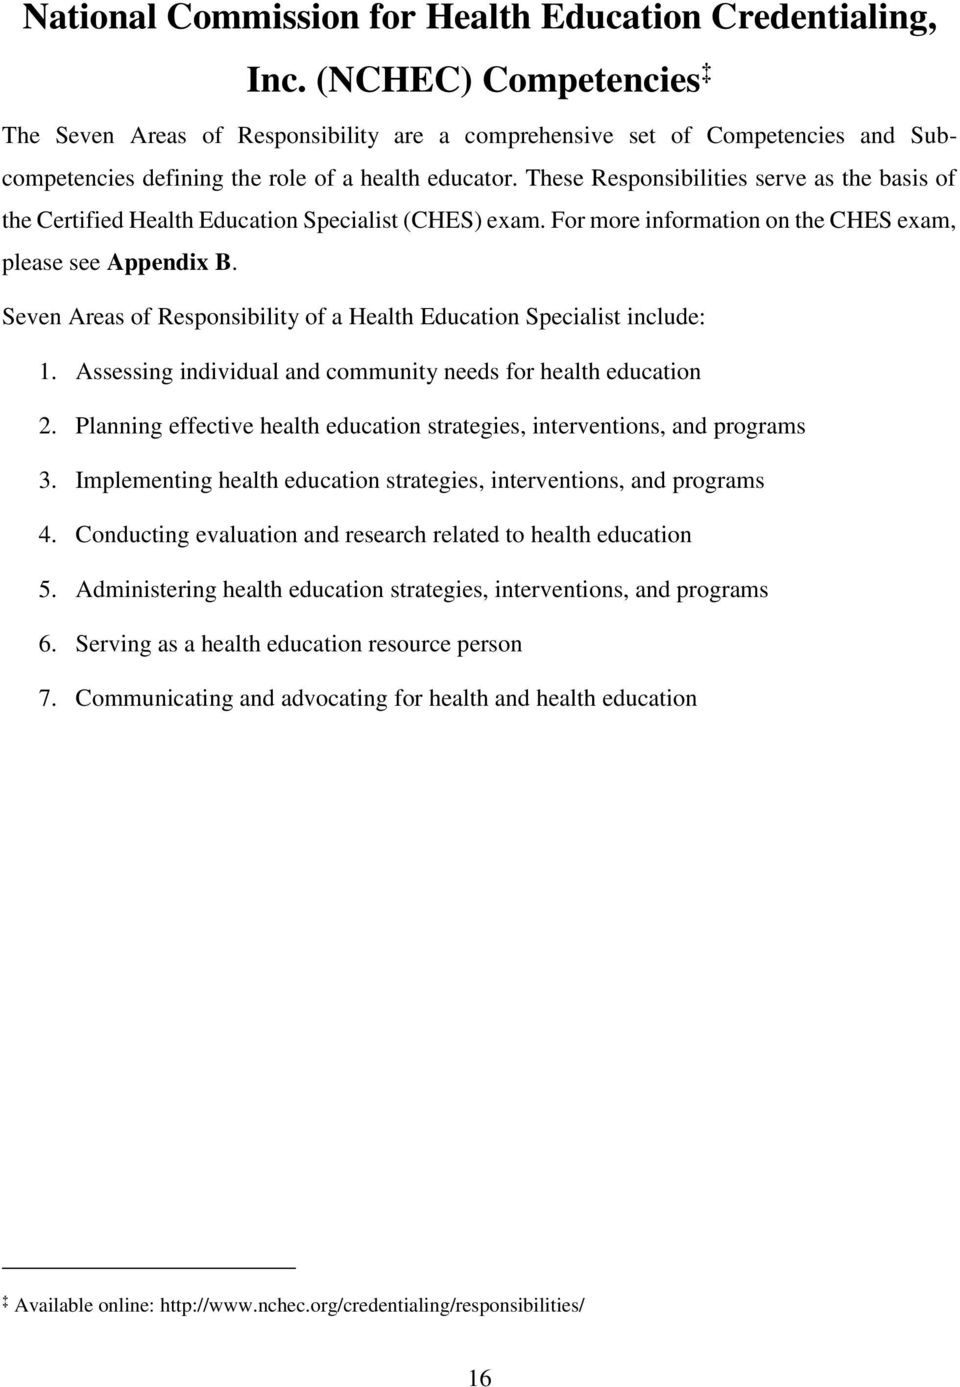 These Responsibilities serve as the basis of the Certified Health Education Specialist (CHES) exam. For more information on the CHES exam, please see Appendix B.